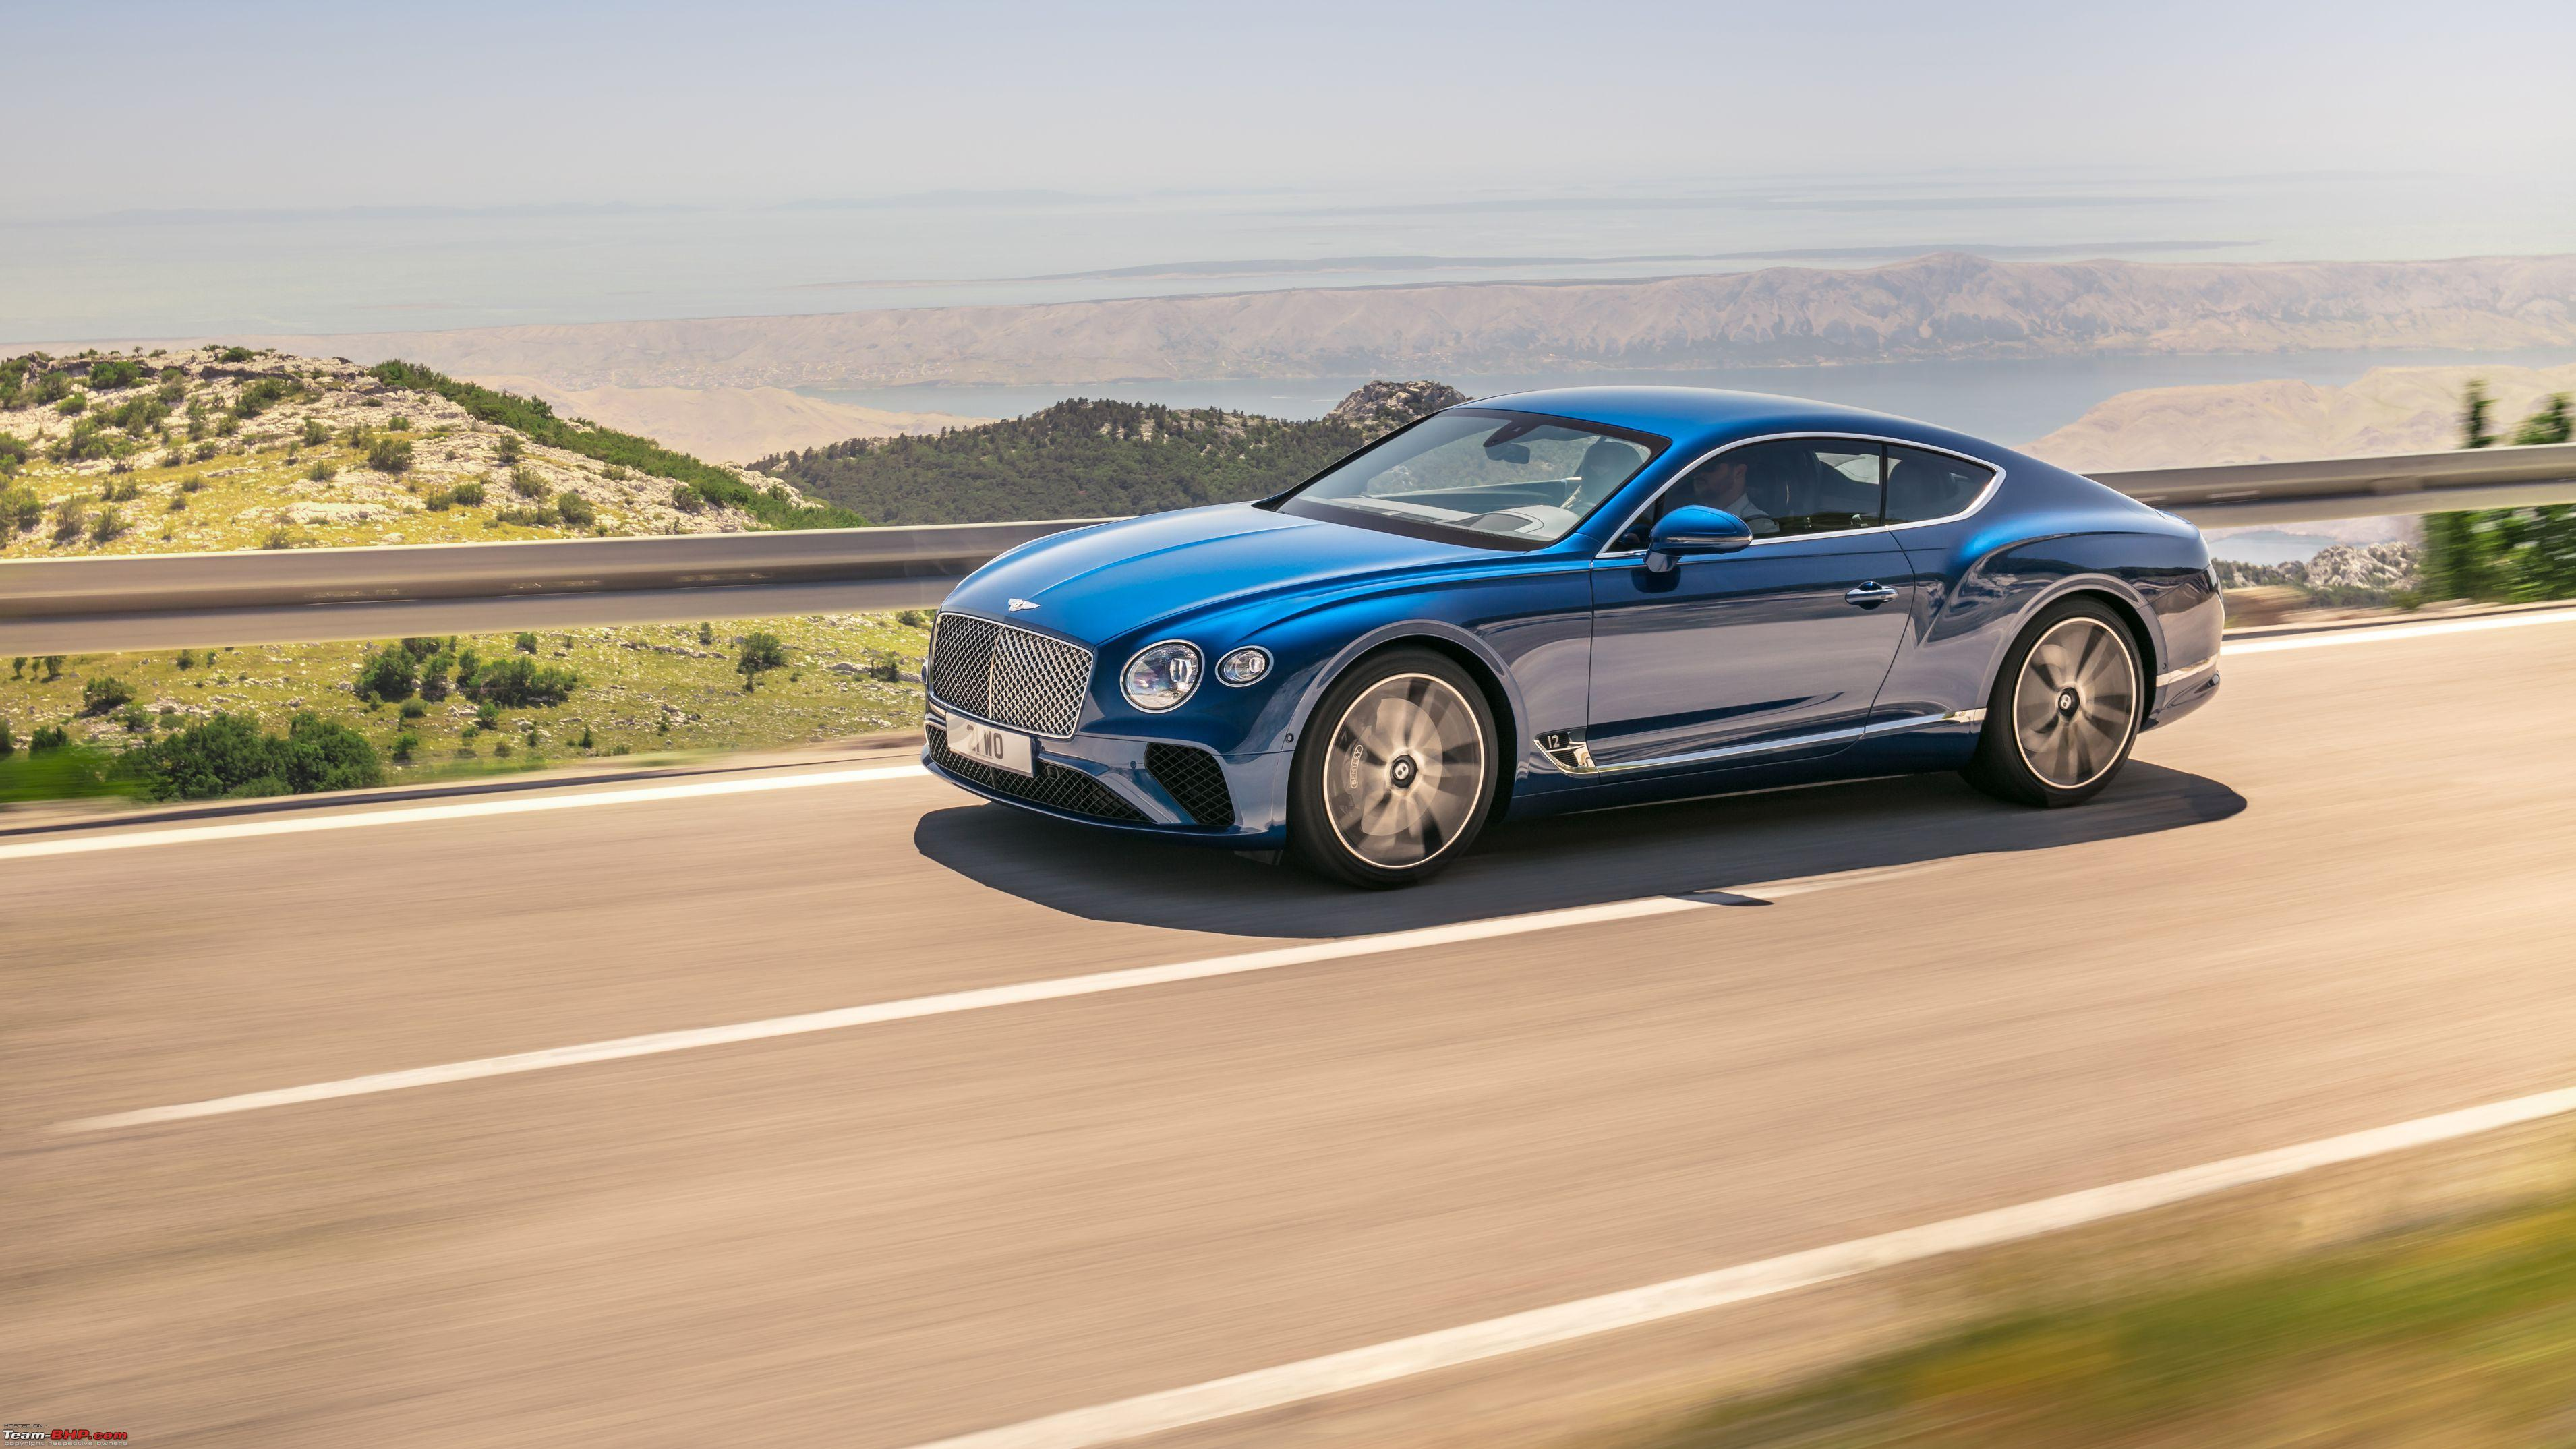 The 2018 Bentley Continental GT